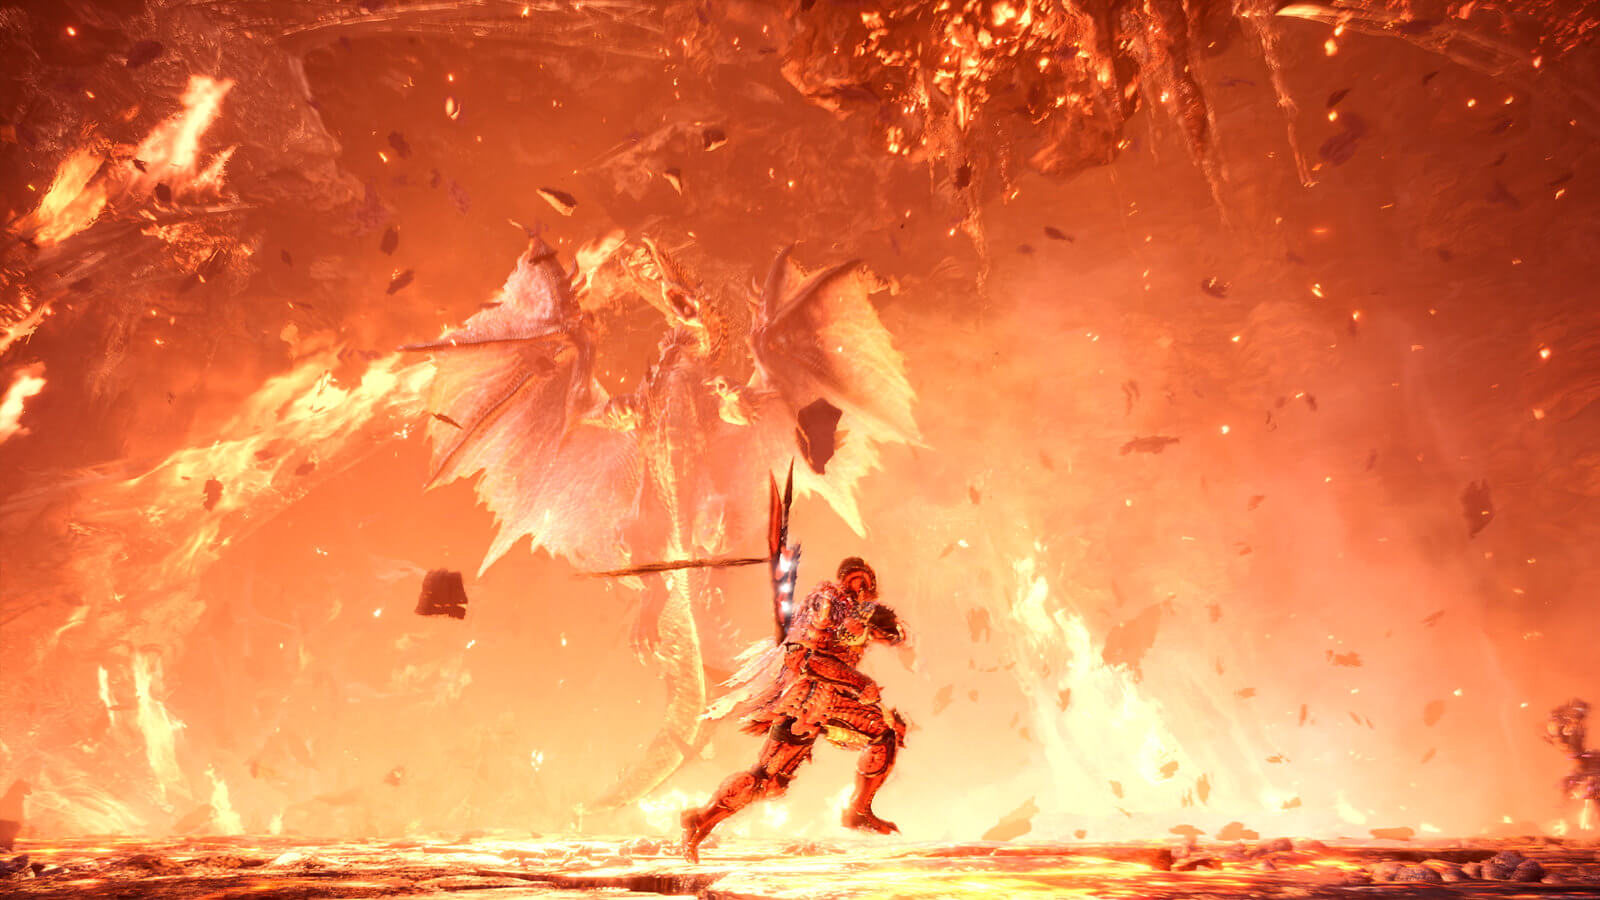 Alatreon Brings A Storm Of Elements To Monster Hunter World